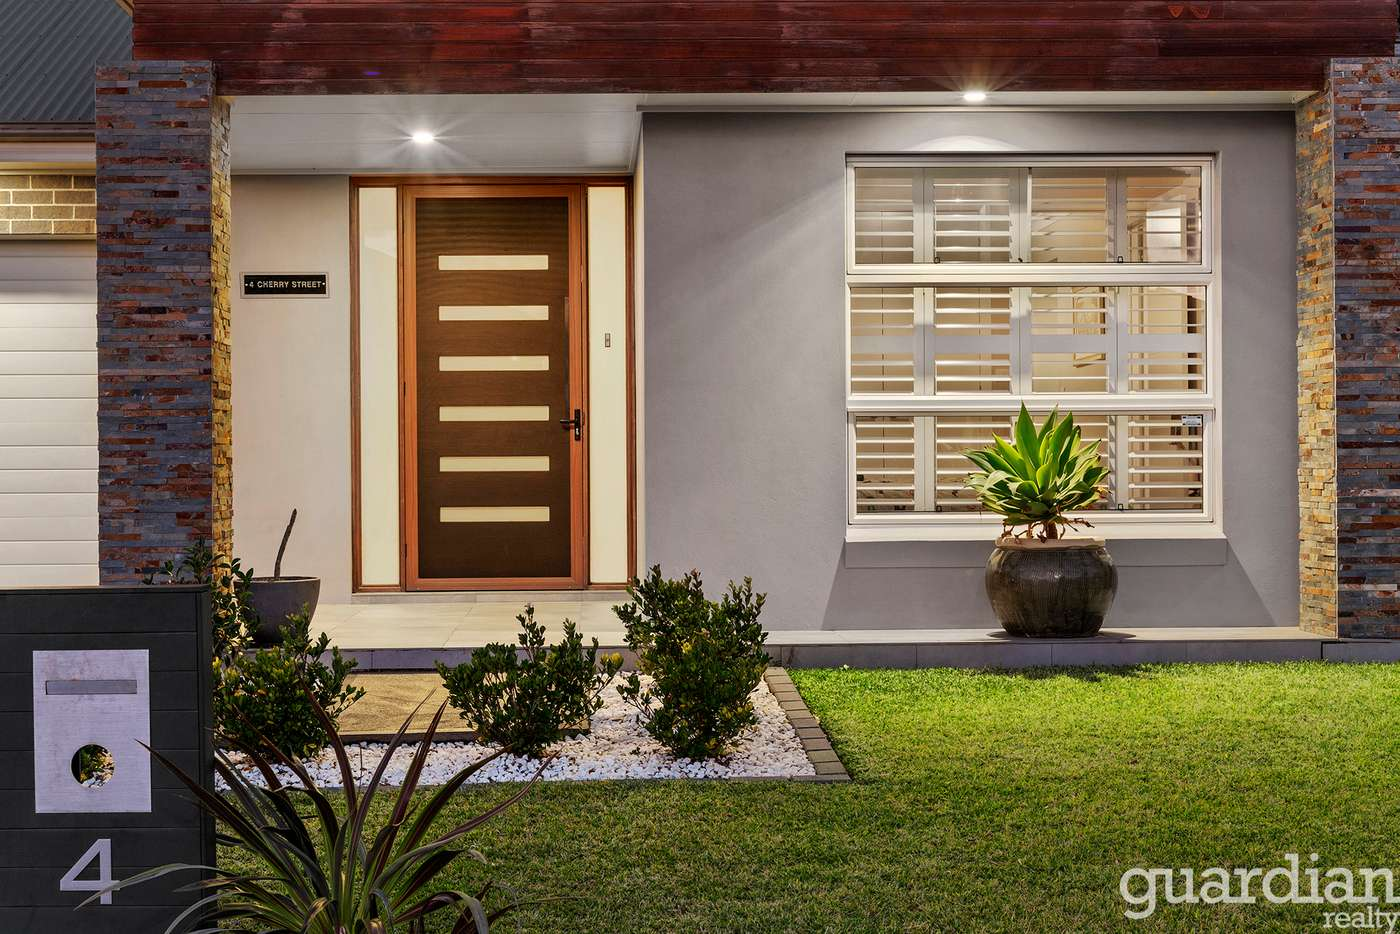 Fifth view of Homely house listing, 4 Cherry Street, Pitt Town NSW 2756